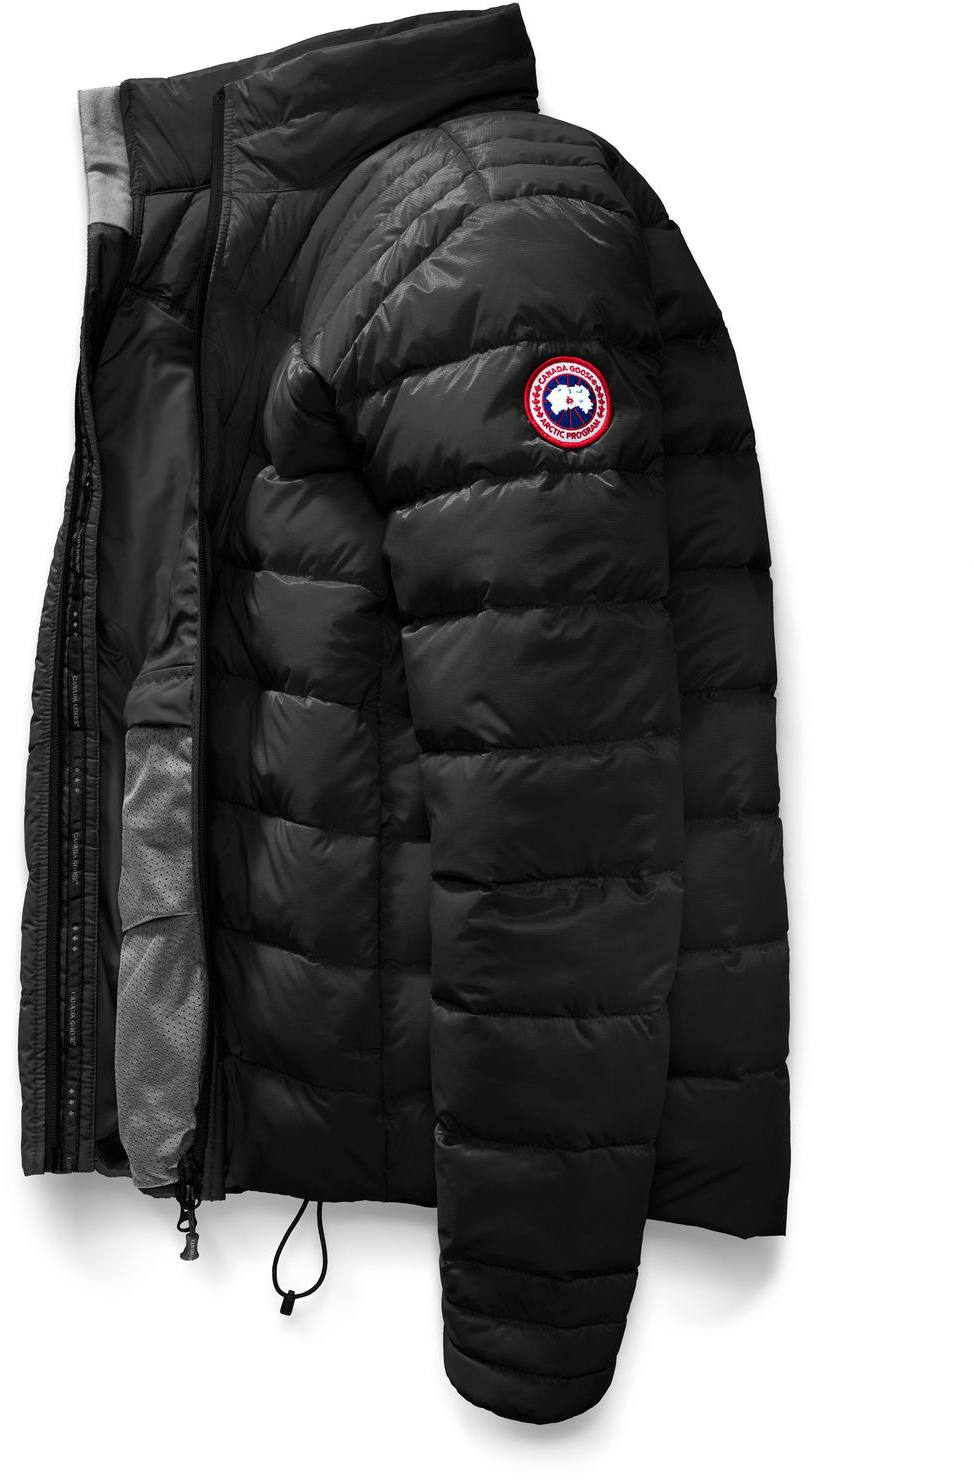 Black/graphite. Canada Goose Brookvale Jacket. Canada Goose Brookvale Jacket. Full image ...